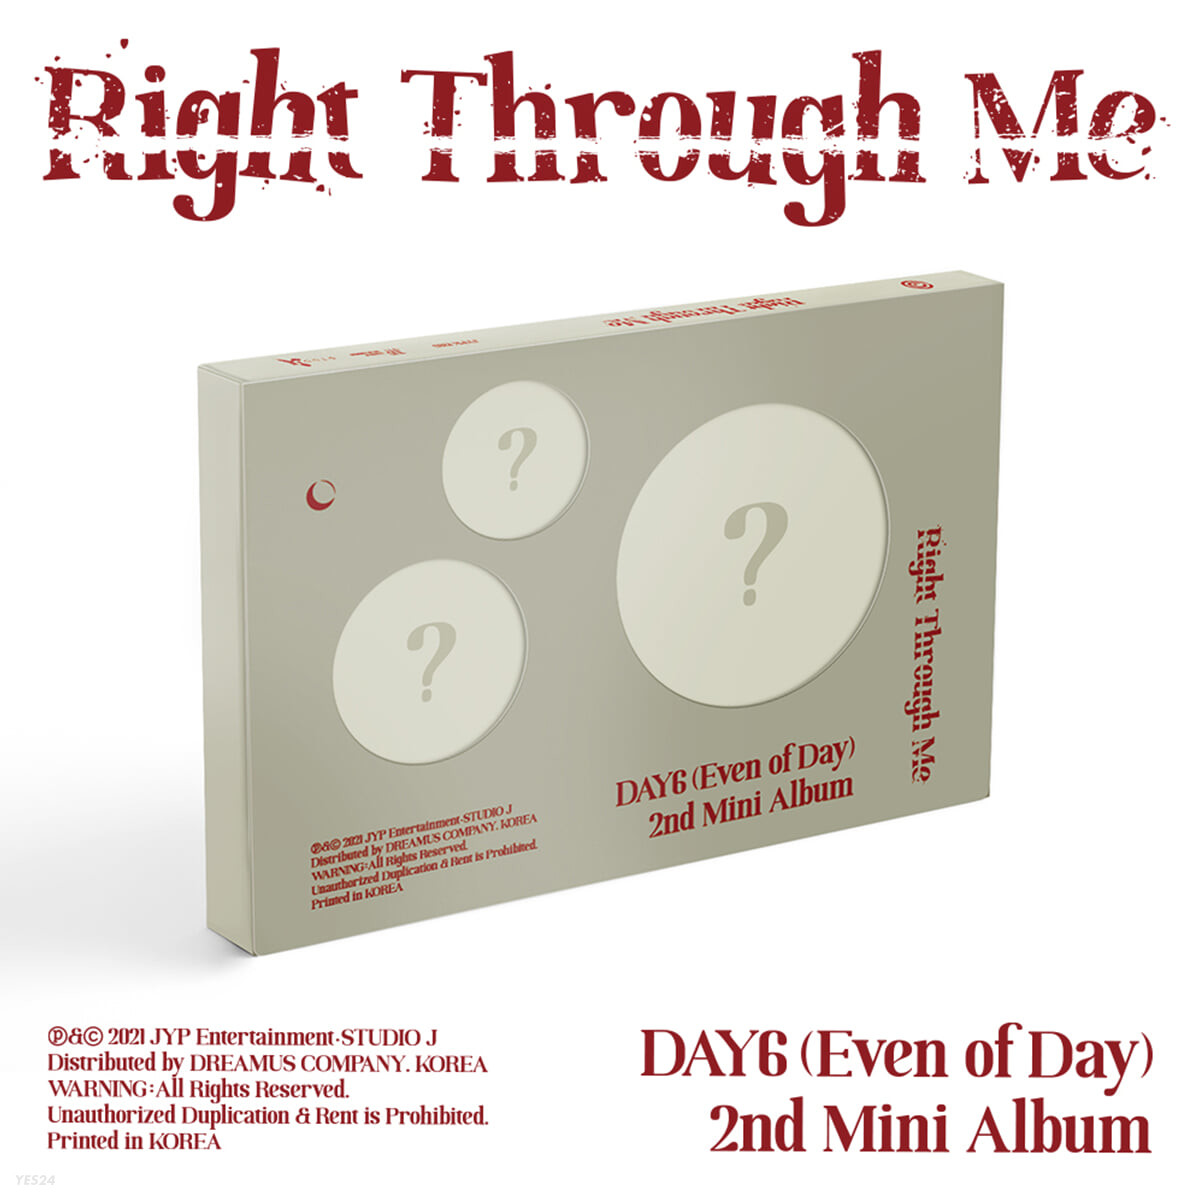 DAY6 (Even of Day) - Right Through Me